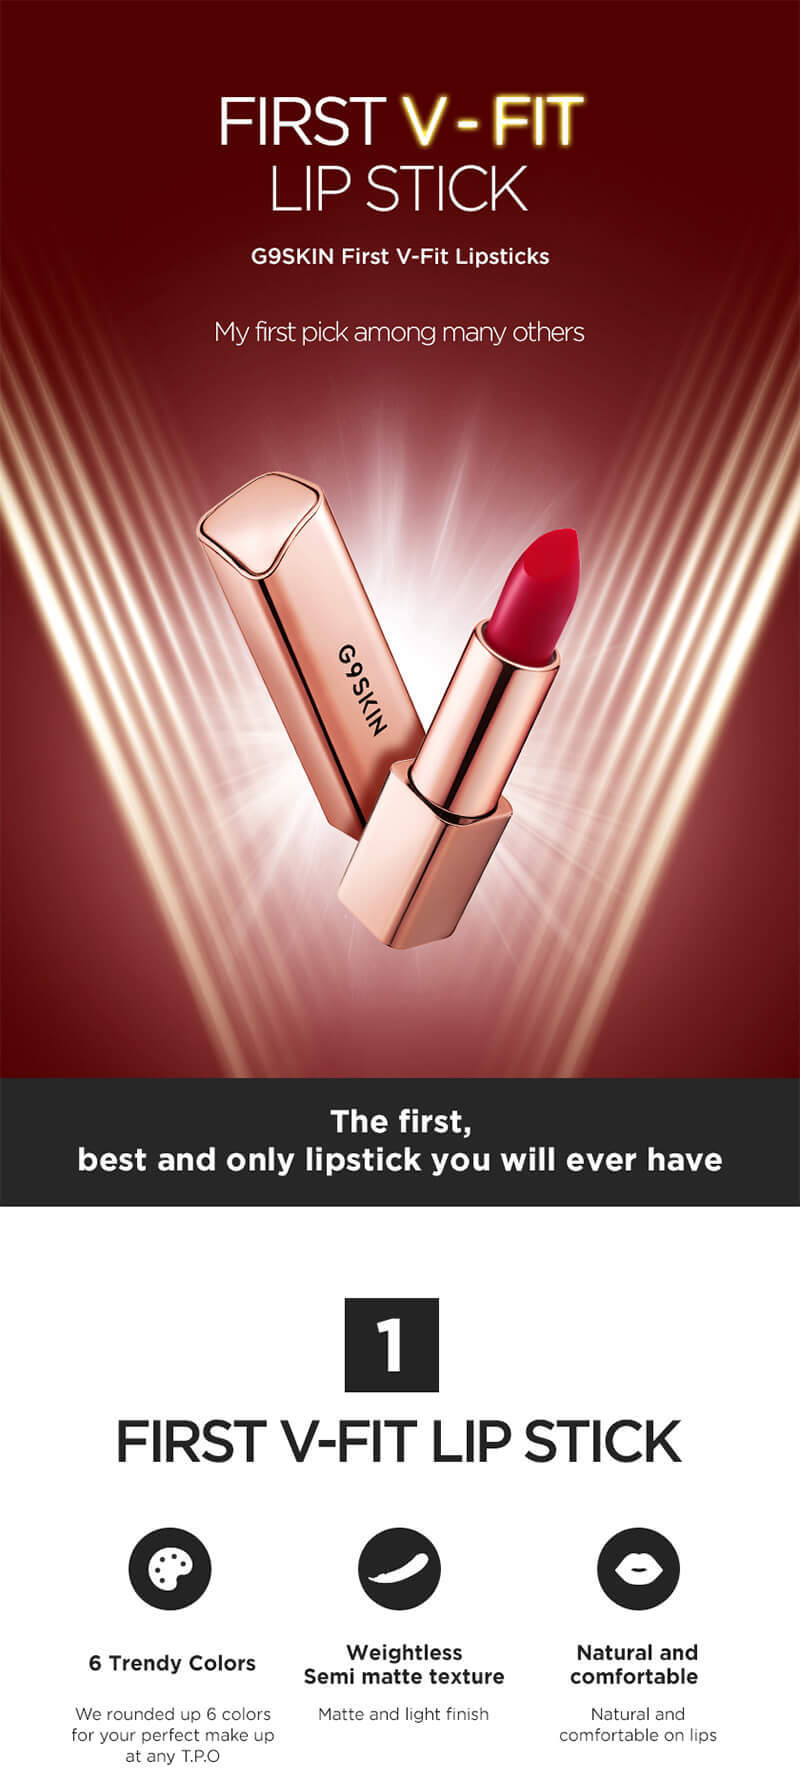 G9 Skin First V-Fit Lipstick